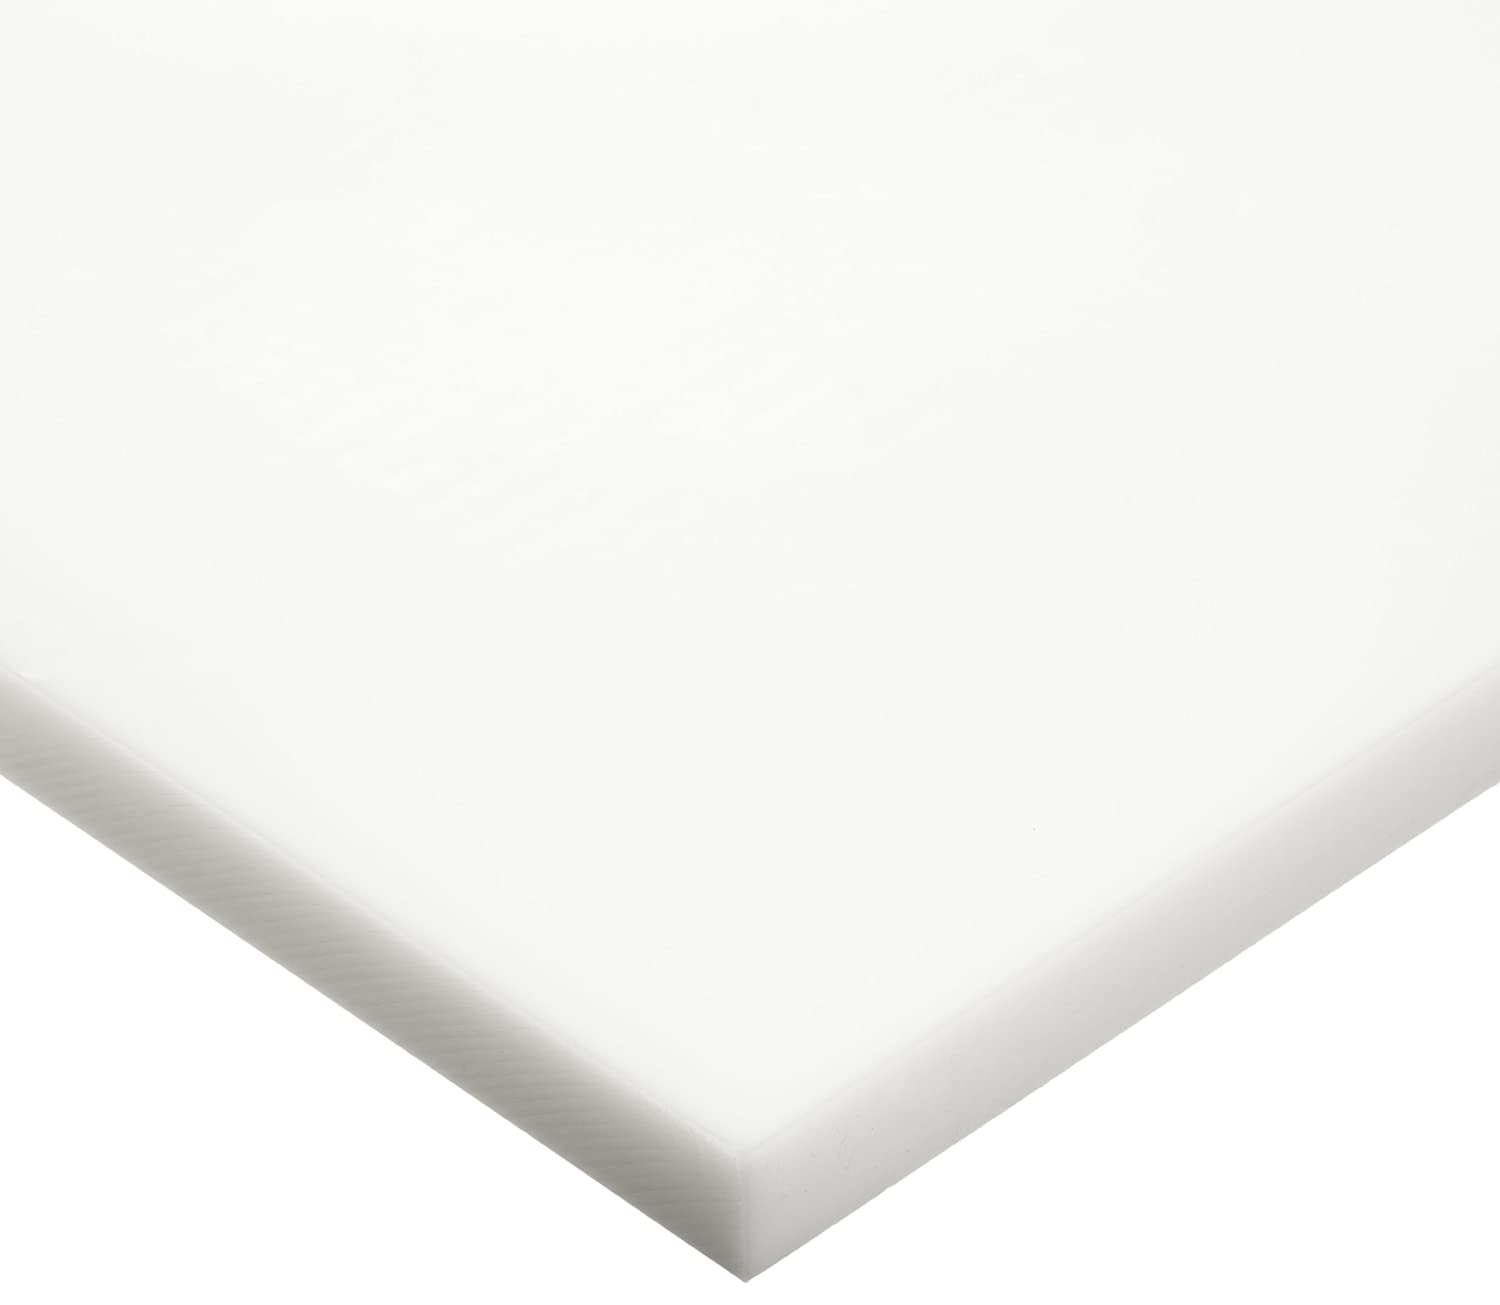 HDPE High Density Polyethylene Brand new Opaque Standa New Shipping Free Shipping Off-White Sheet